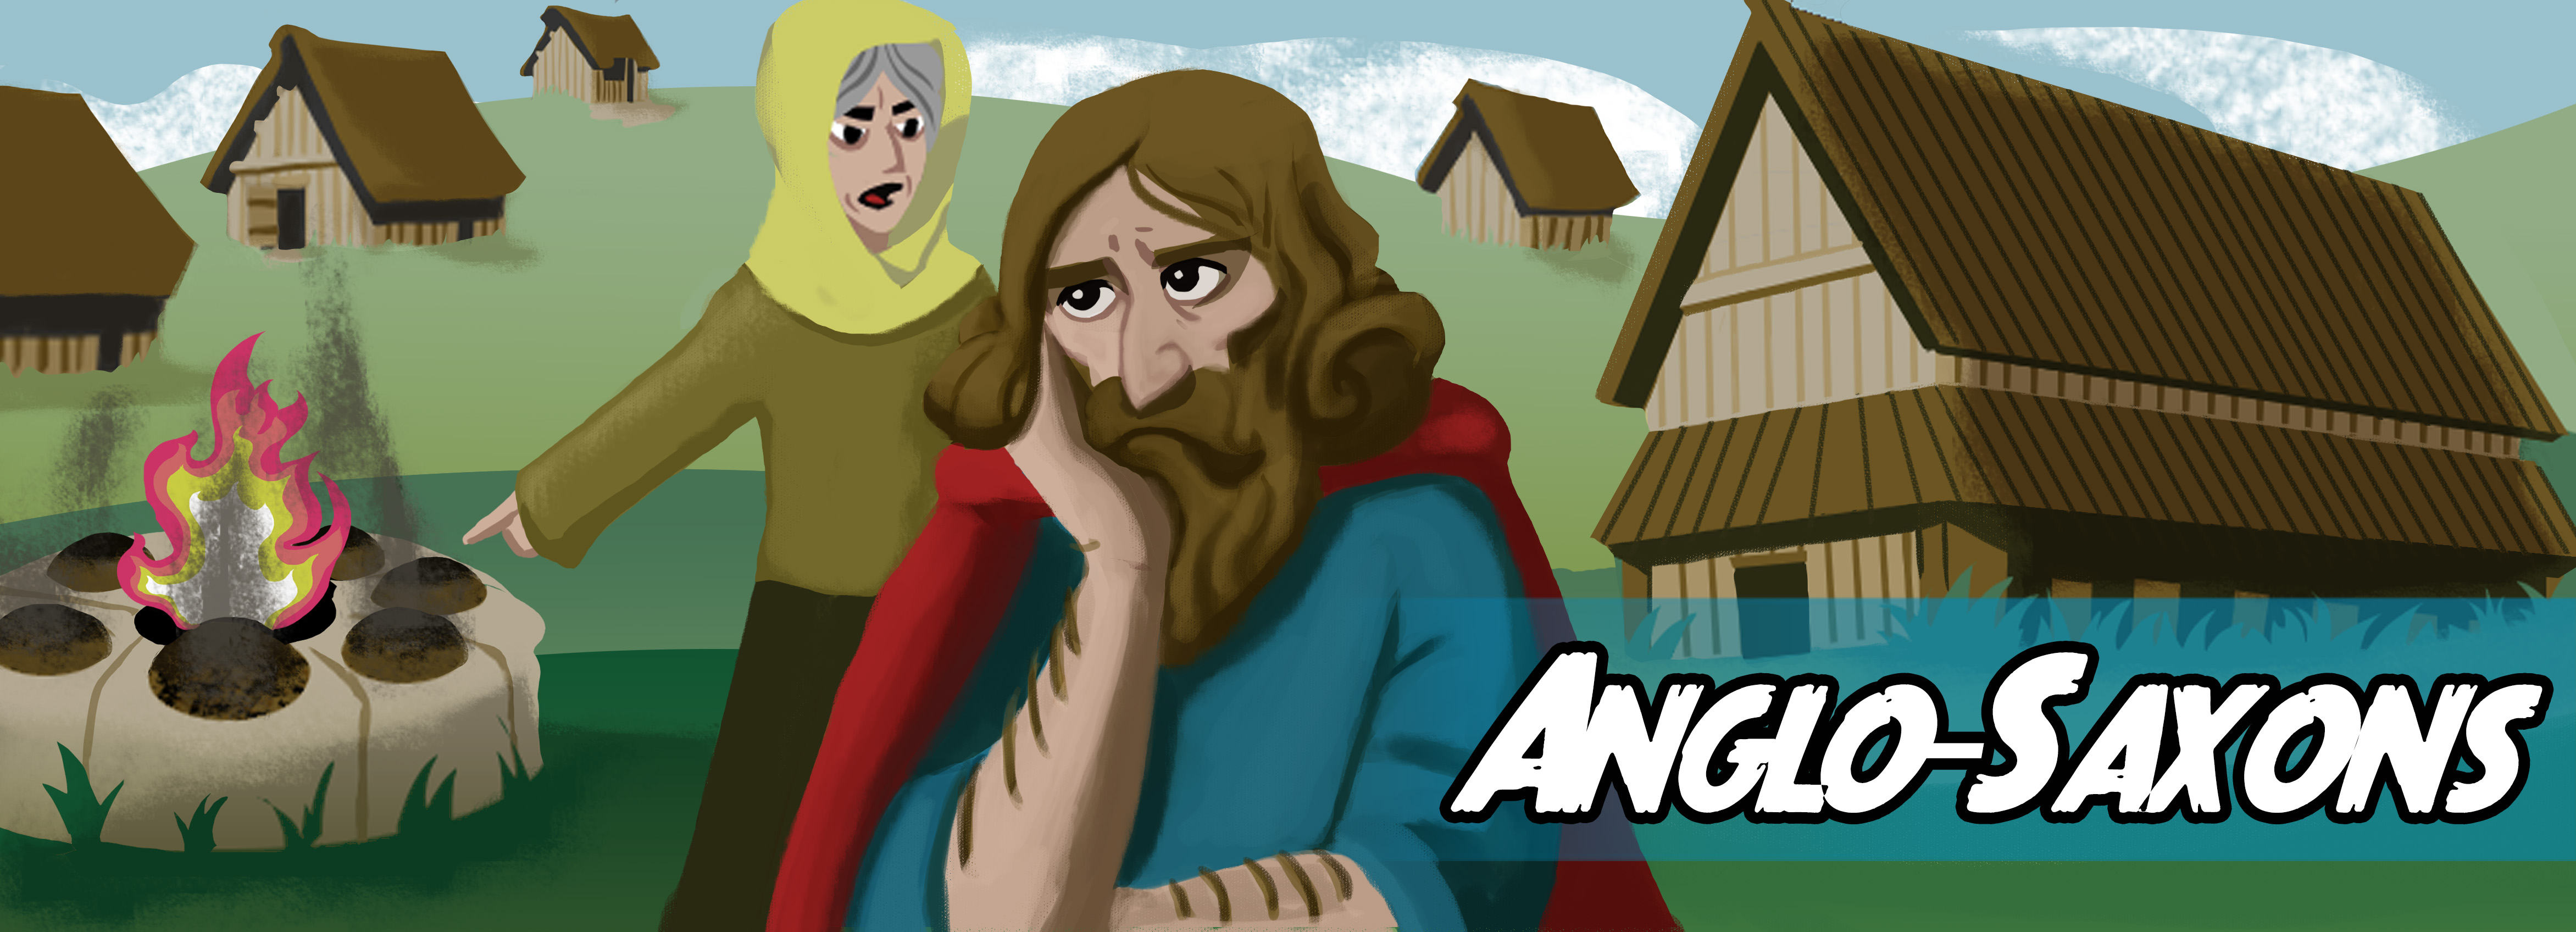 Write your own story about the Anglo-Saxons